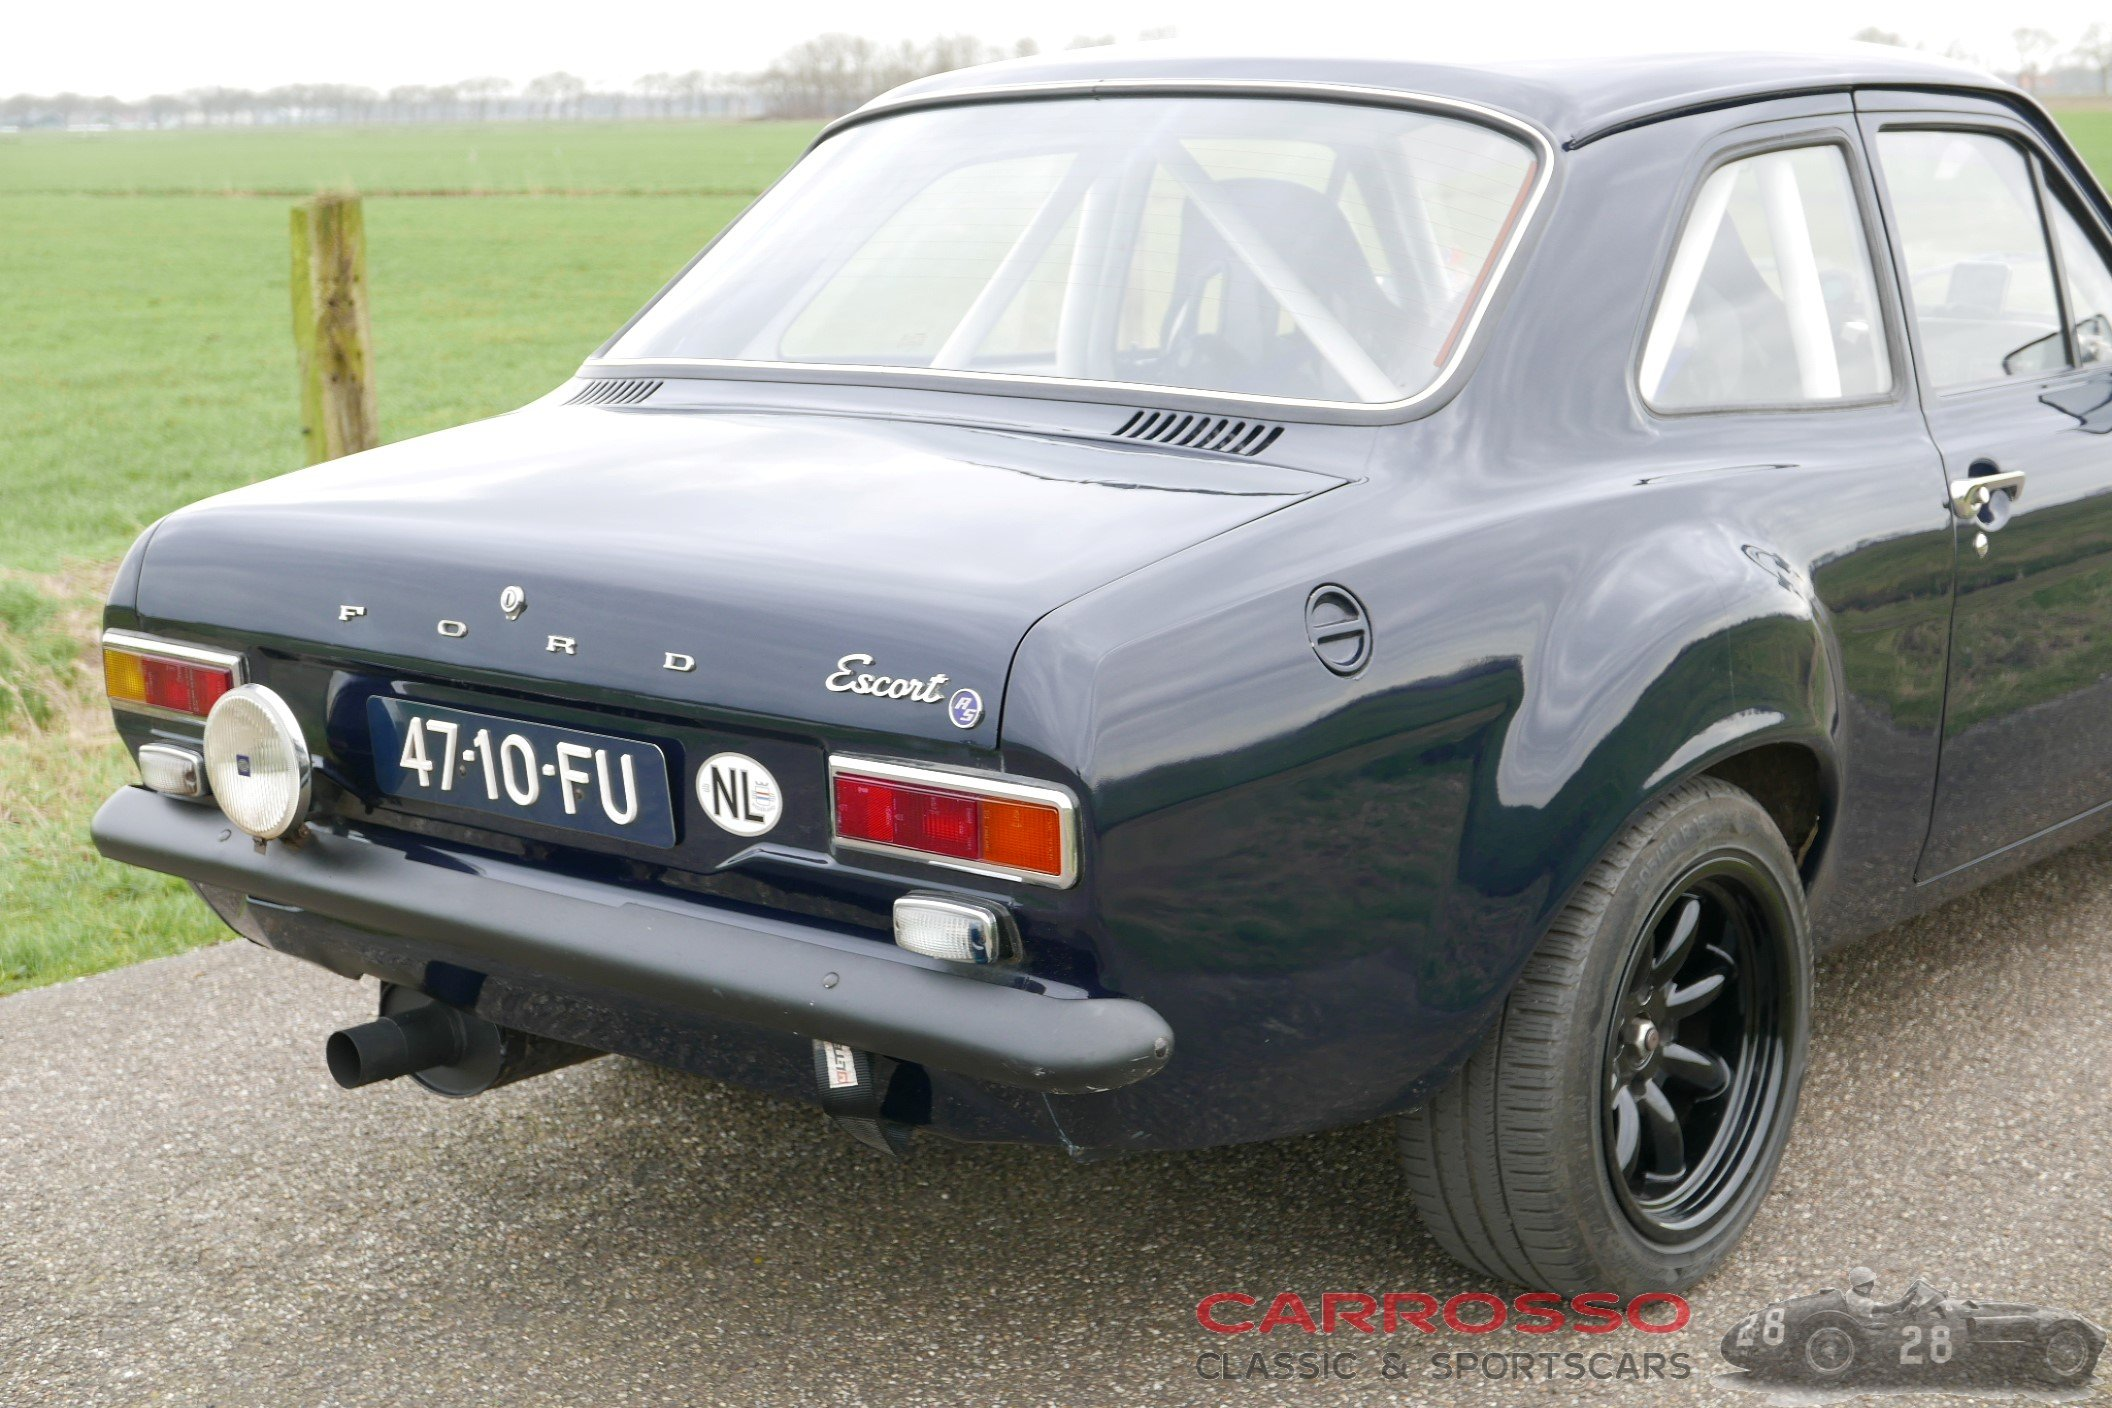 14Ford Escort Rally (12)